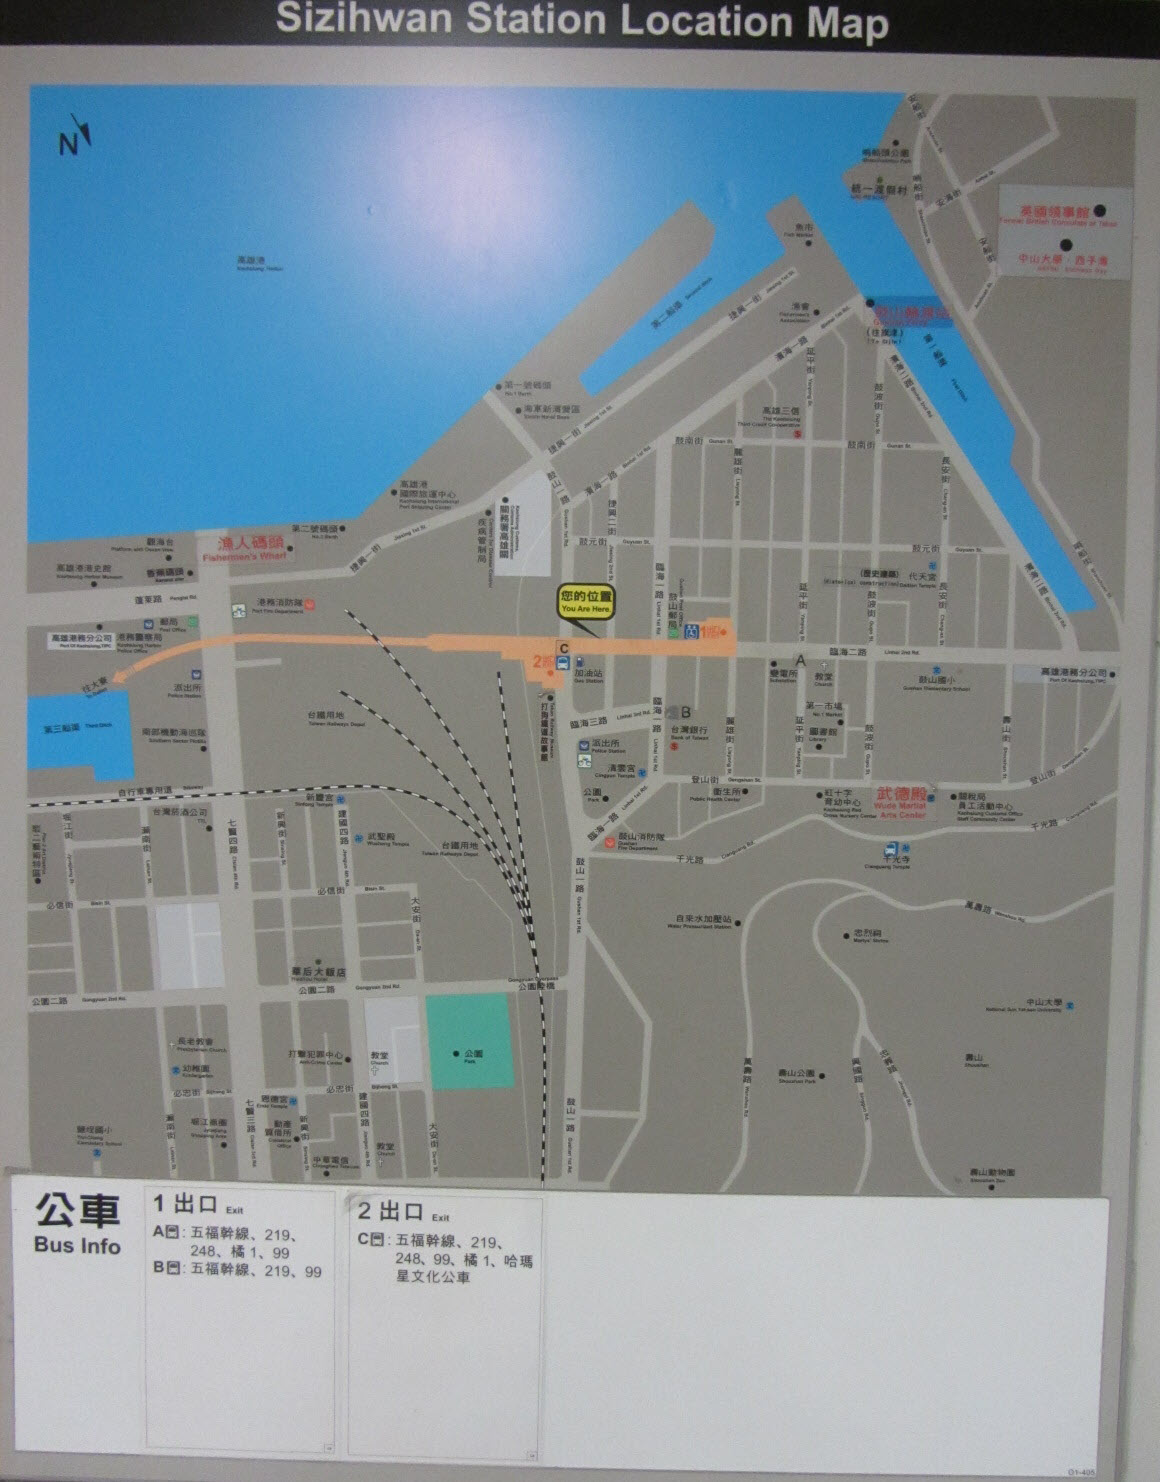 kaohsiung-sizihwan-station-location-map